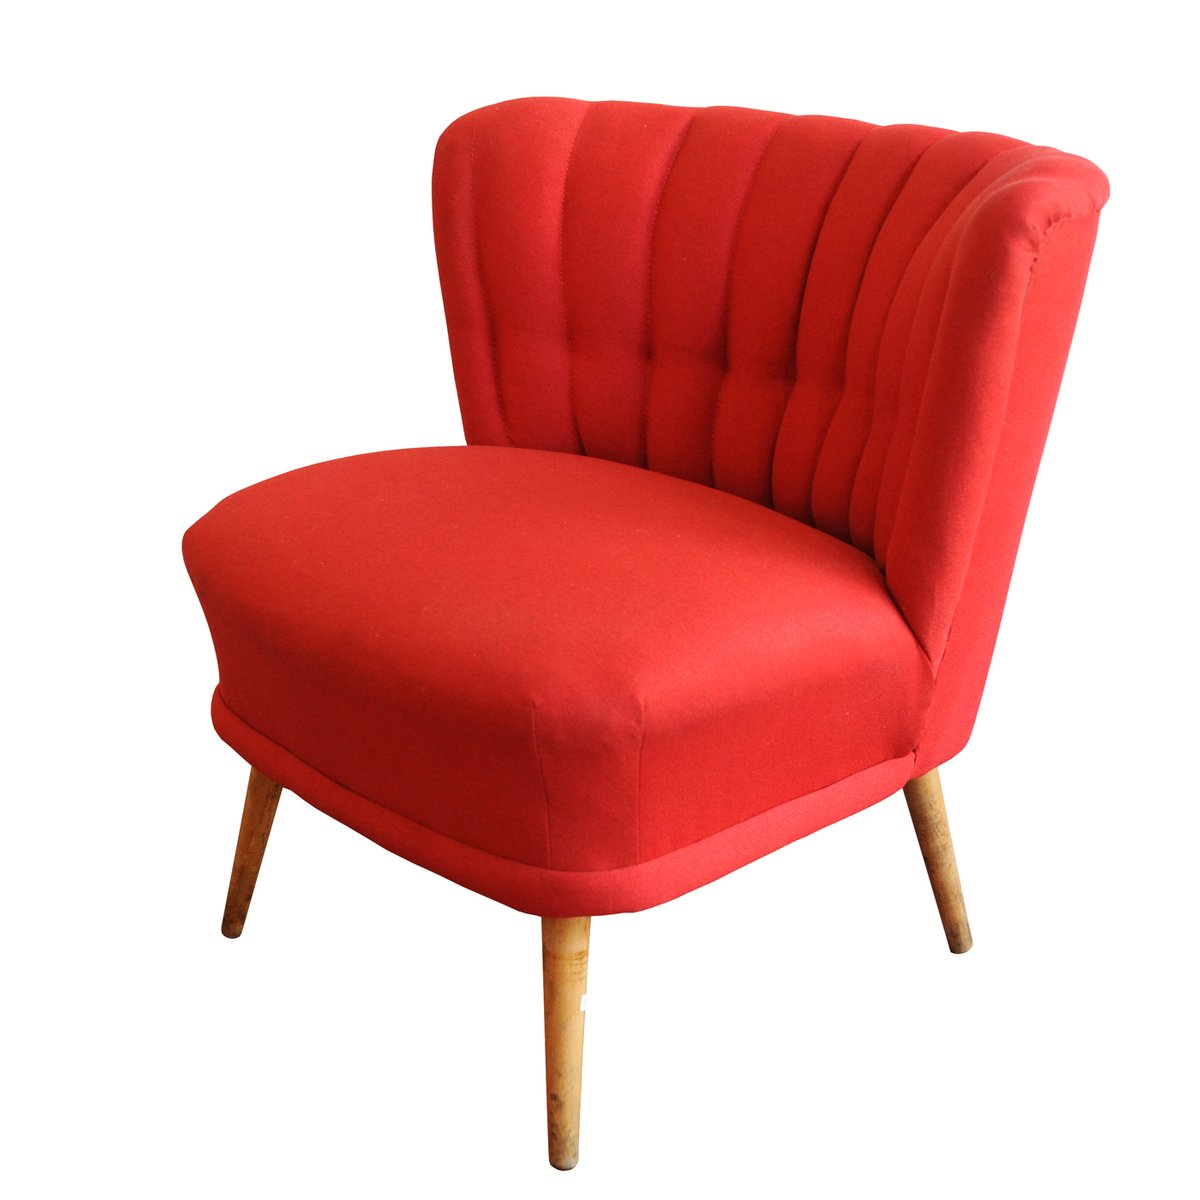 Roter vintage cocktail sessel bei pamono kaufen for Roter sessel